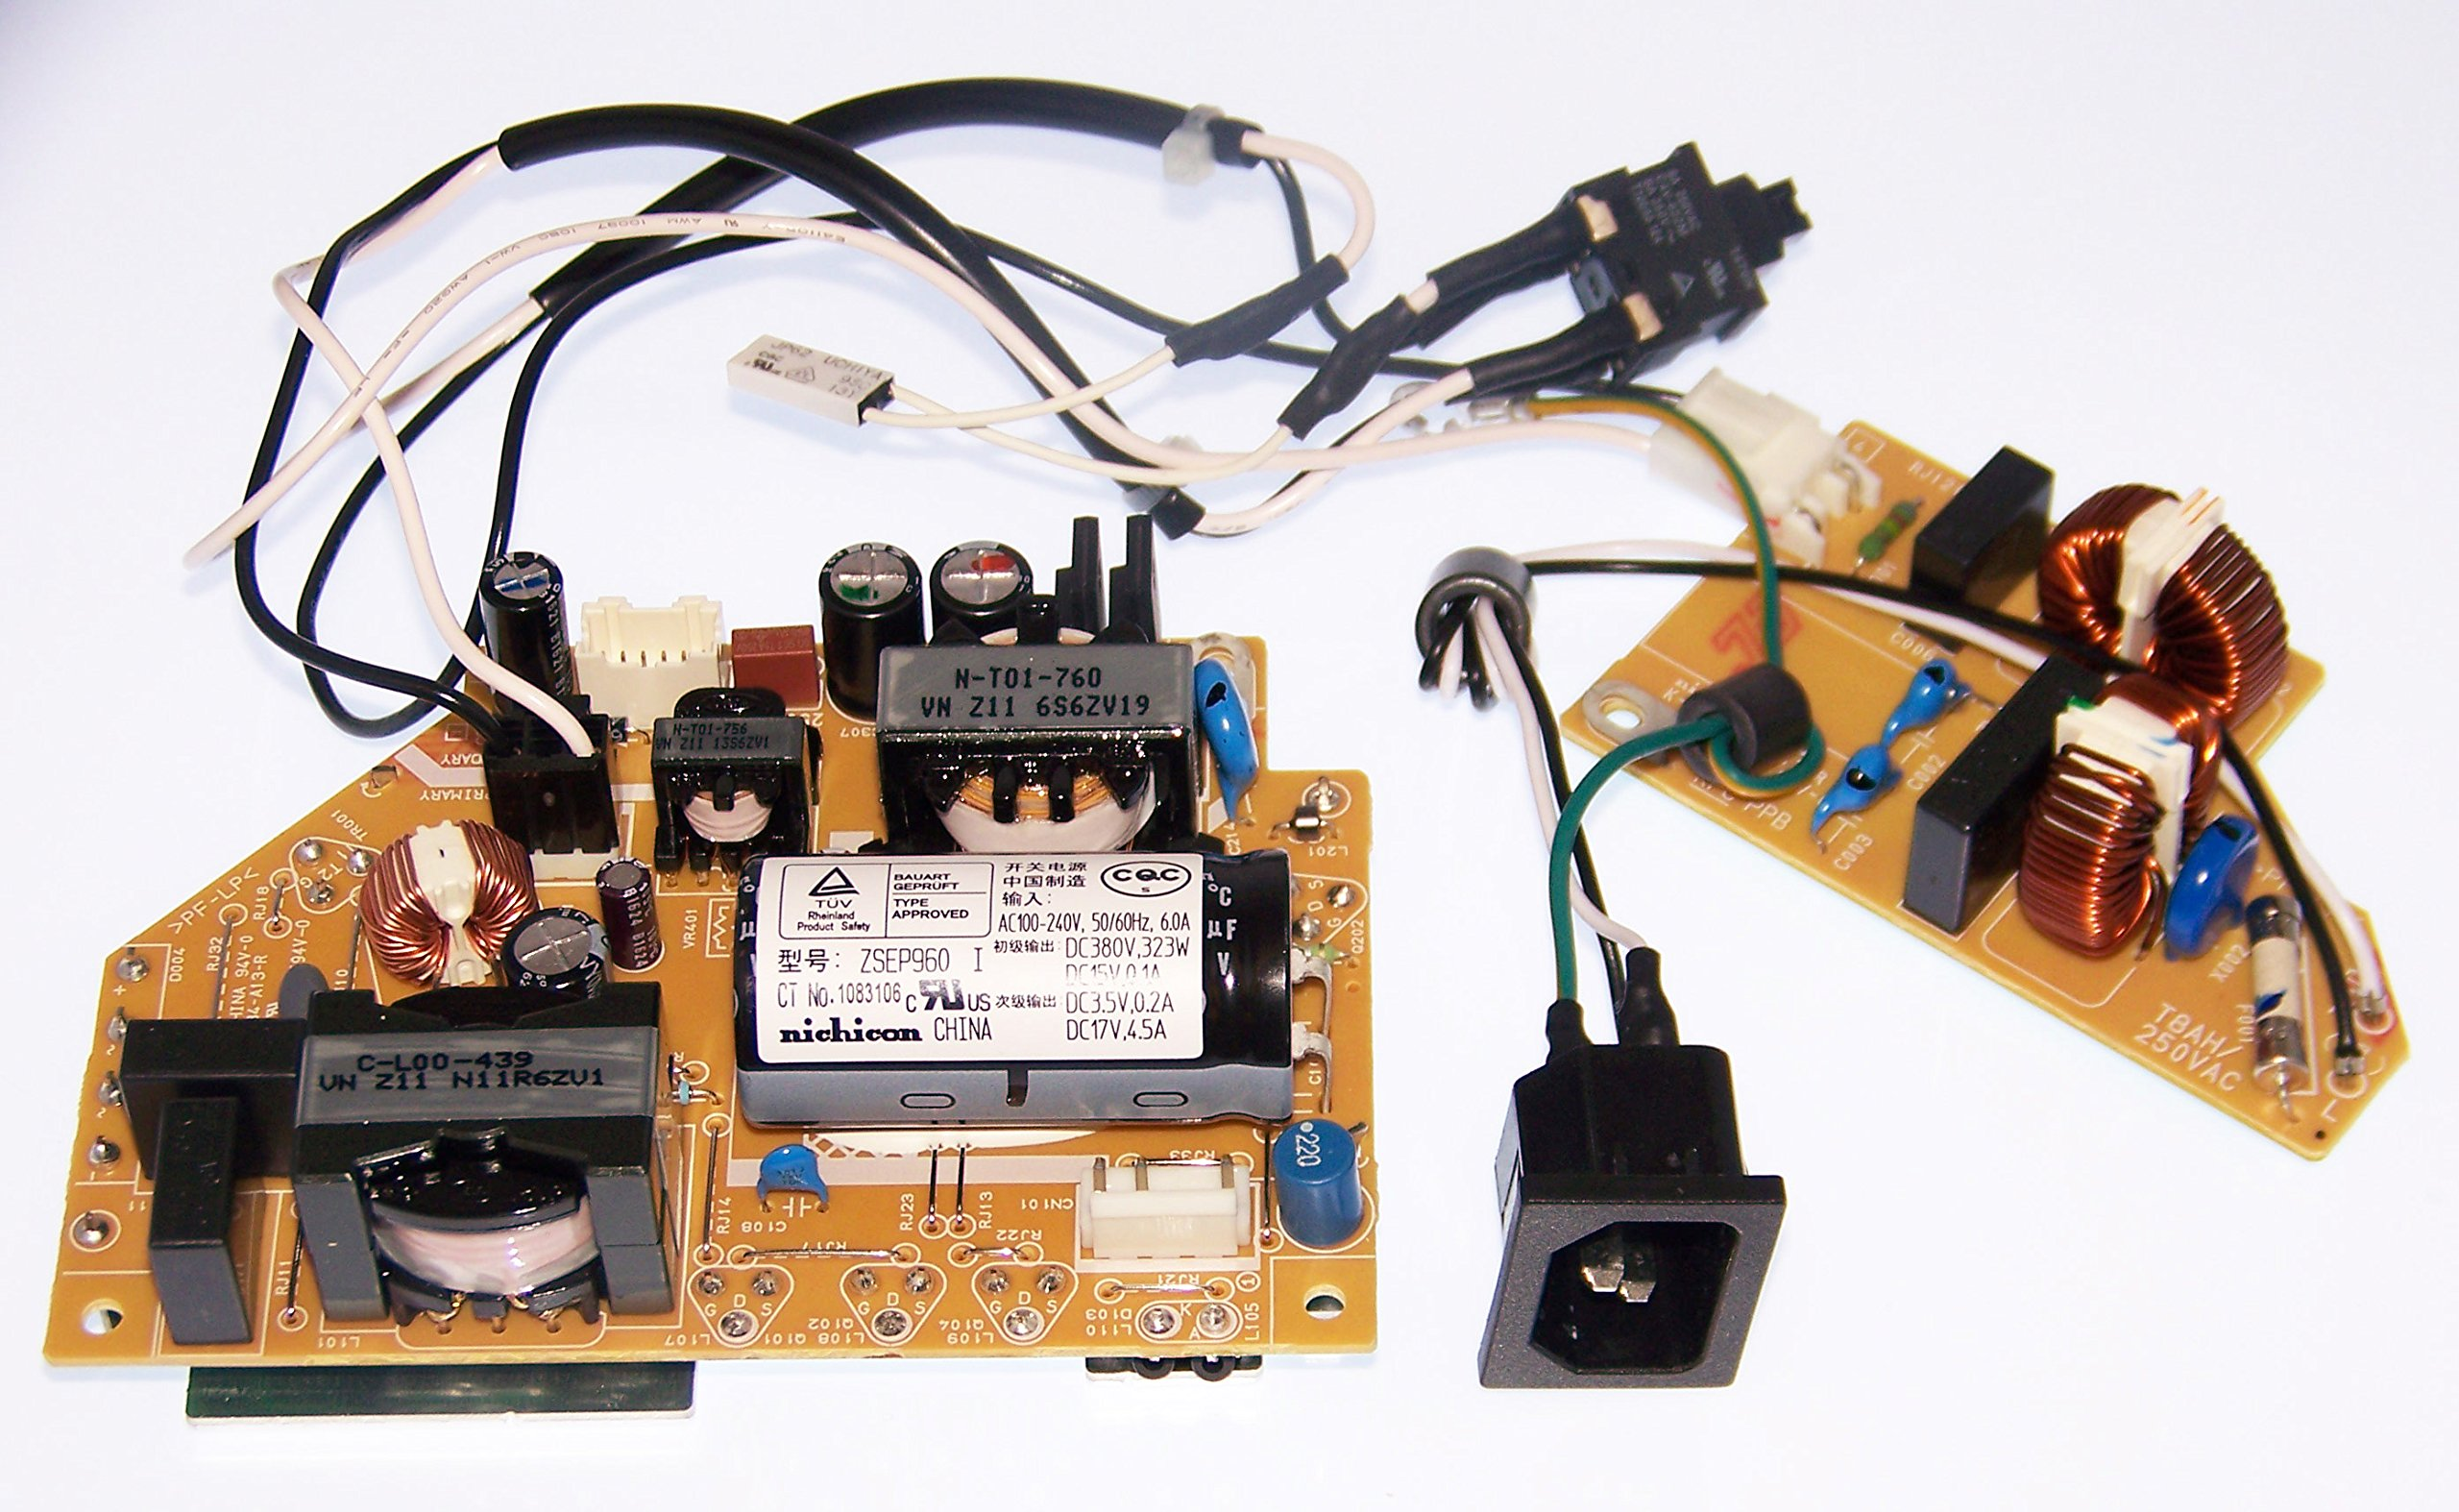 OEM Epson Projector PS Power Supply Filter Assembly For Epson BrightLink 475Wi, 480i, 485Wi, BrightLink Pro 1410Wi